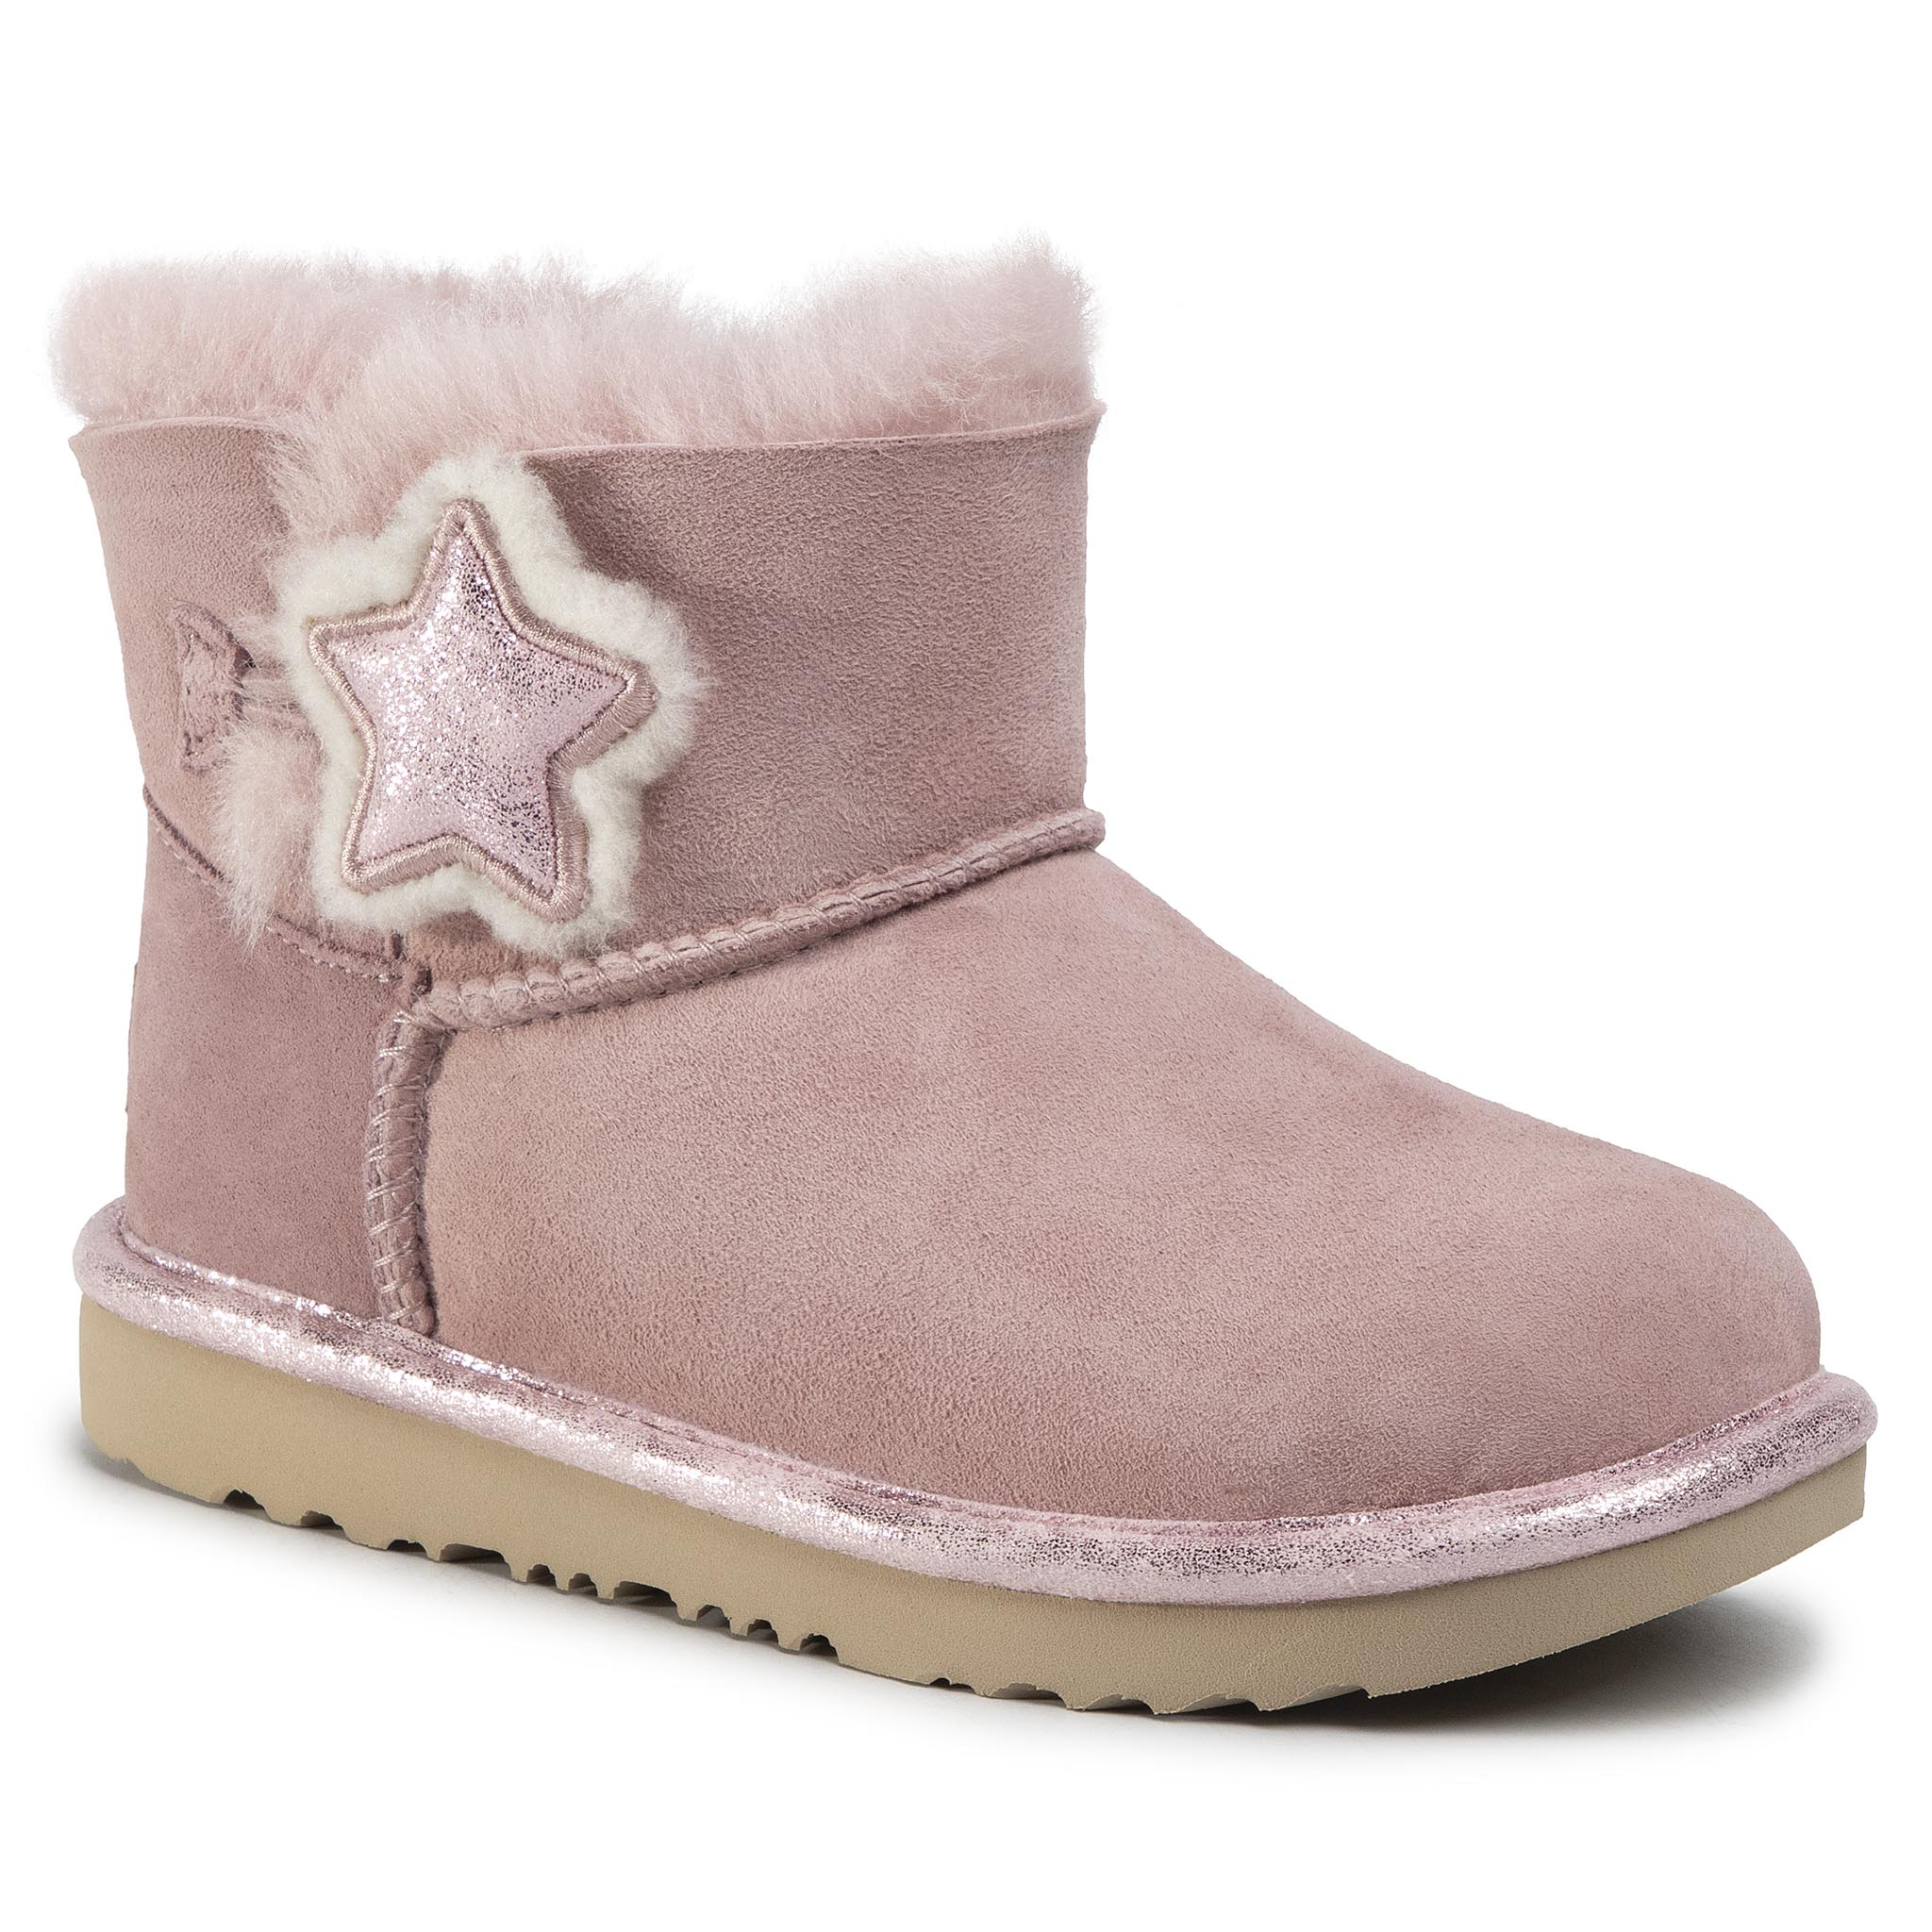 Pantofi Ugg - K Mini Bailey Button Ii Star 1107969k Pcry imagine epantofi.ro 2021